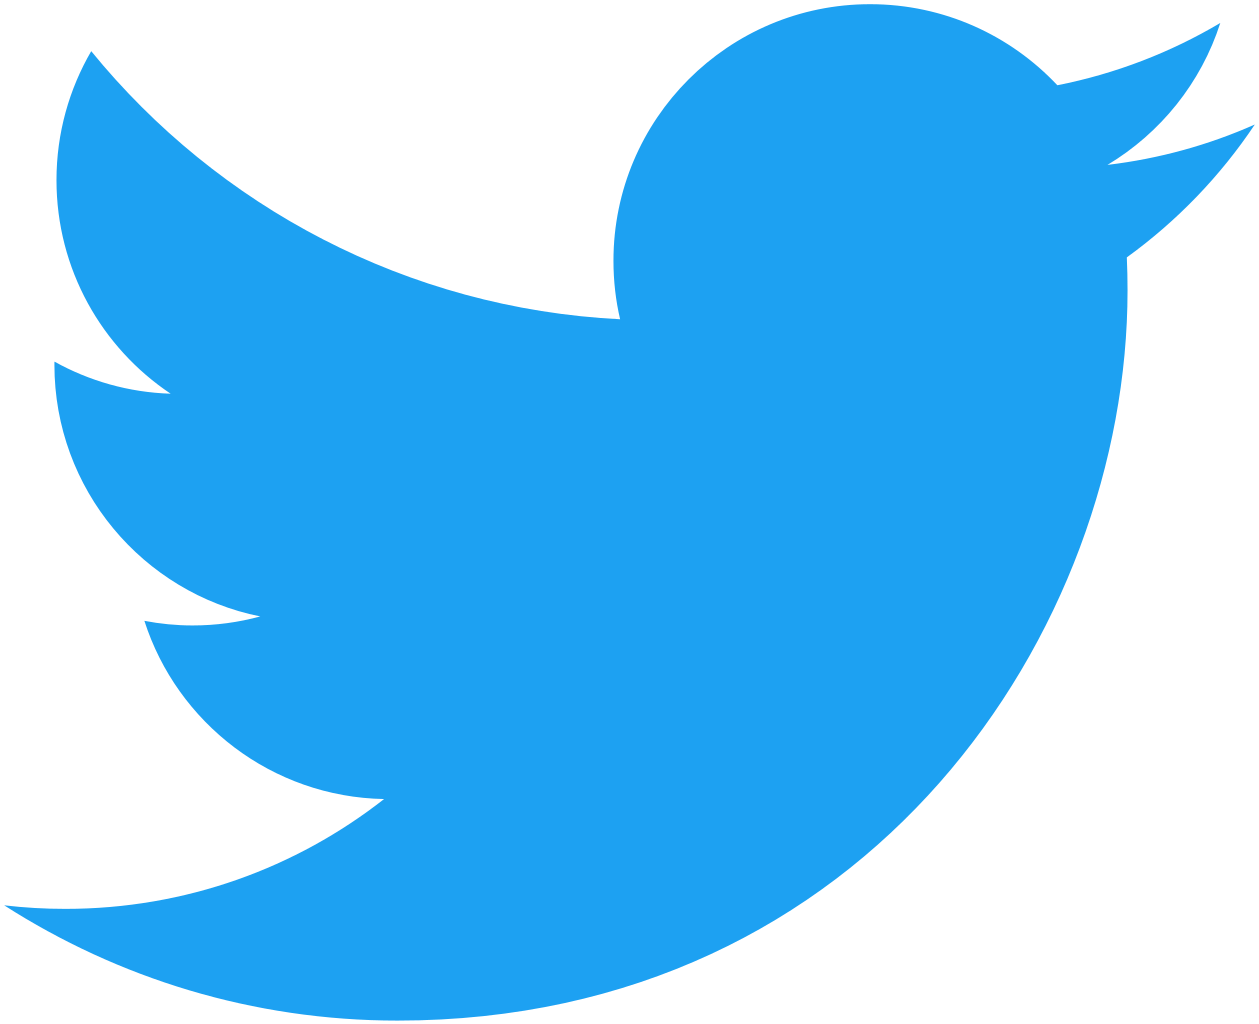 Twitter Bird Logo 2012 Svg